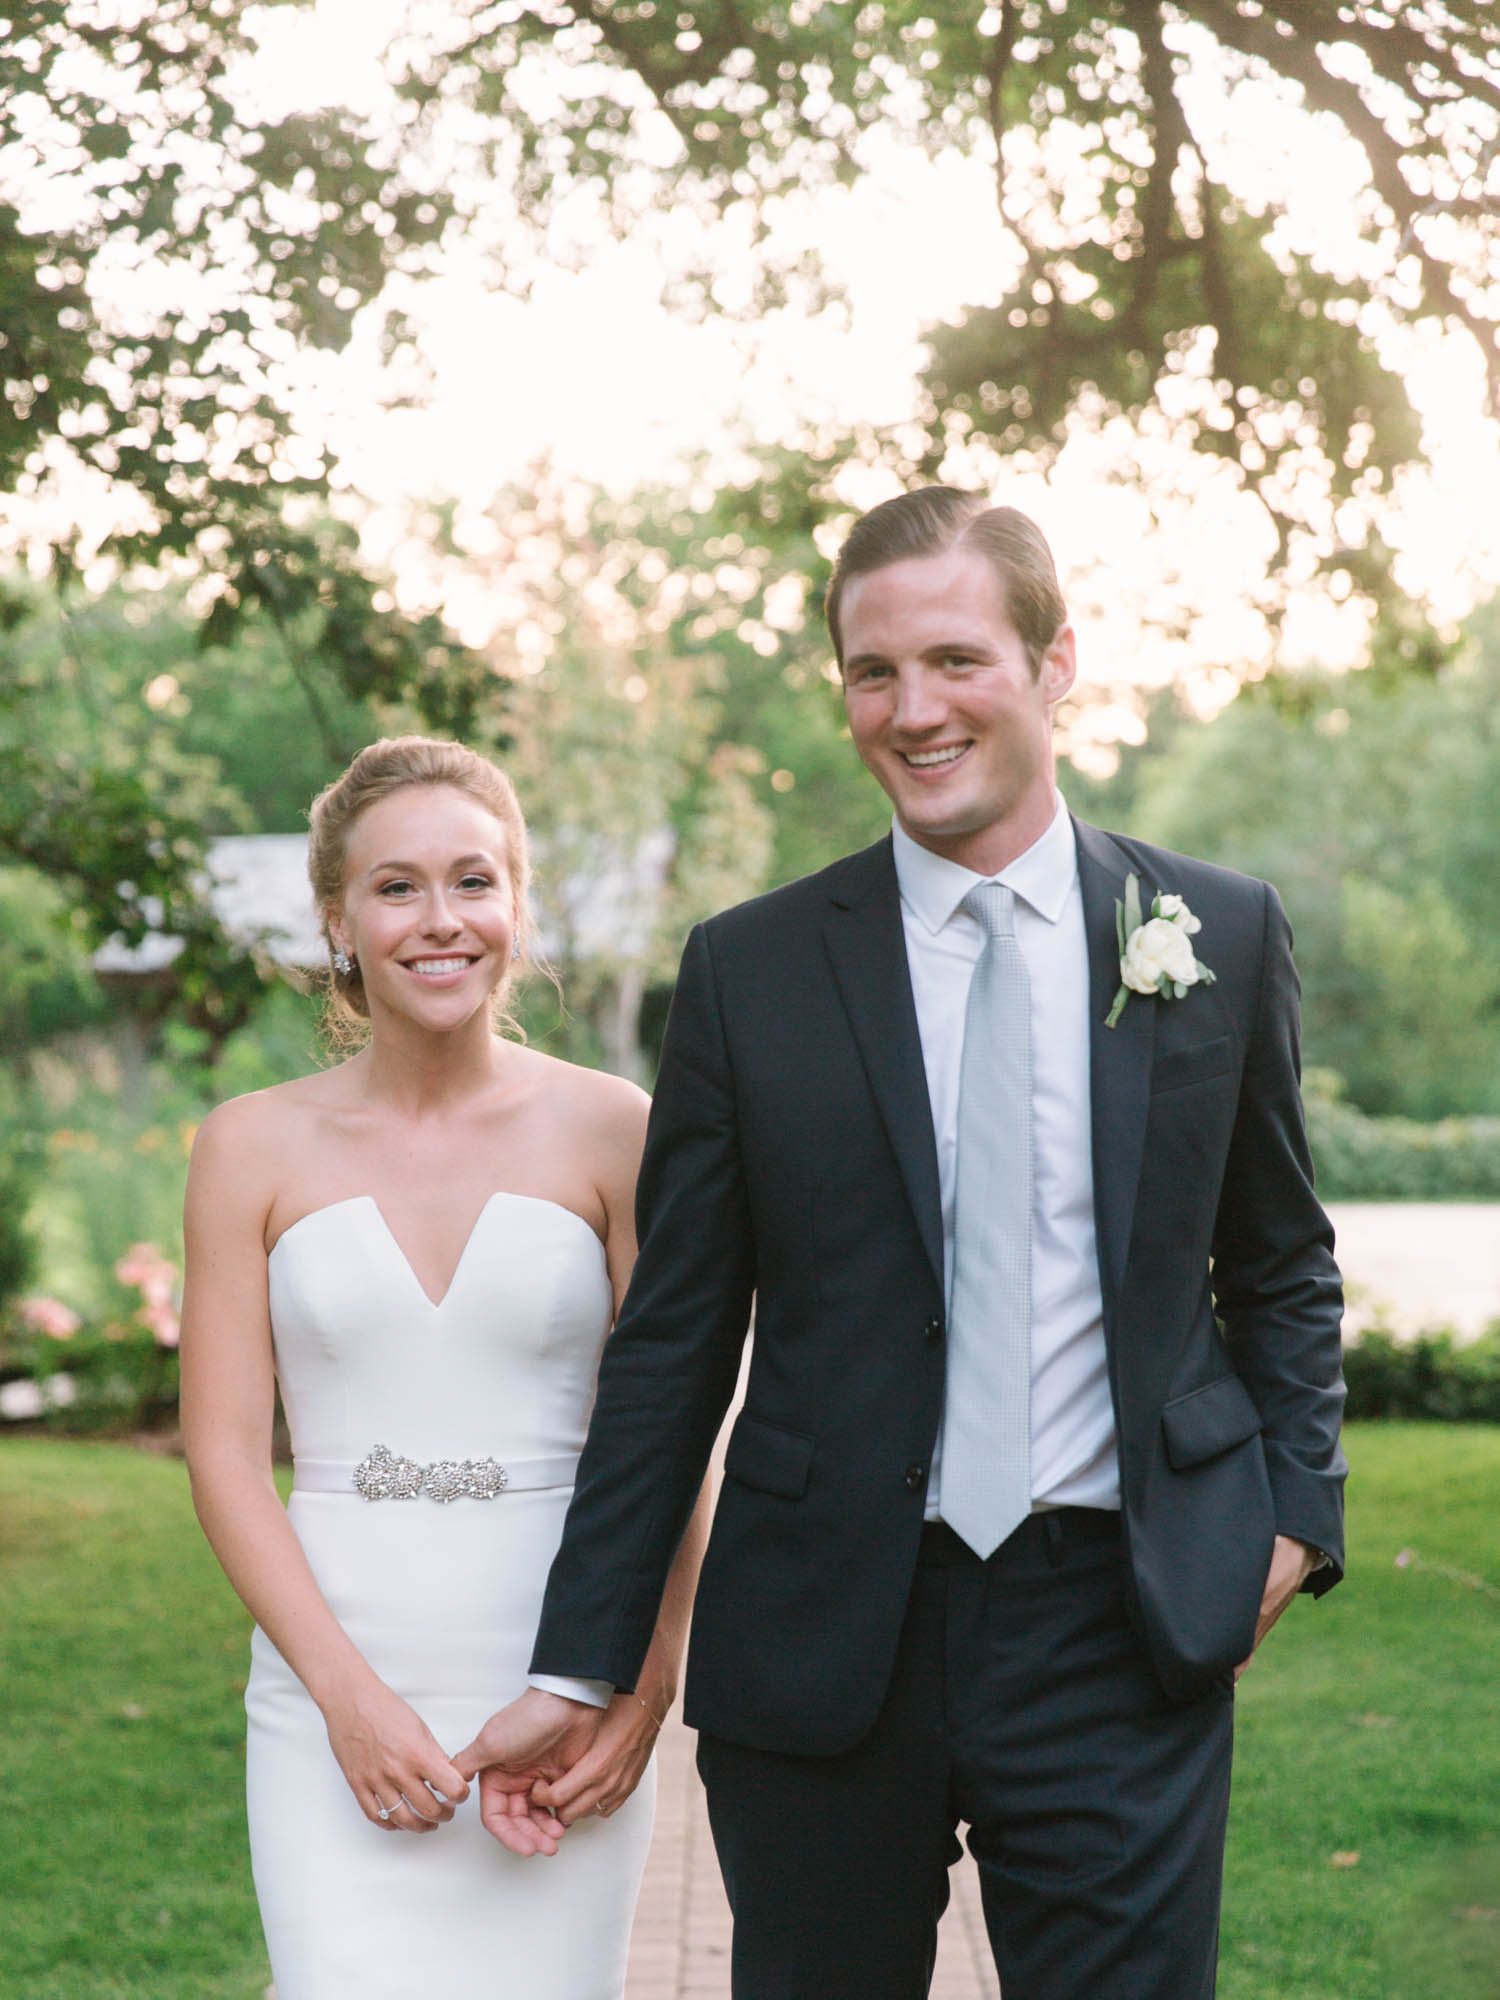 kateweinsteinphoto_farmatdoverwedding-200.jpg